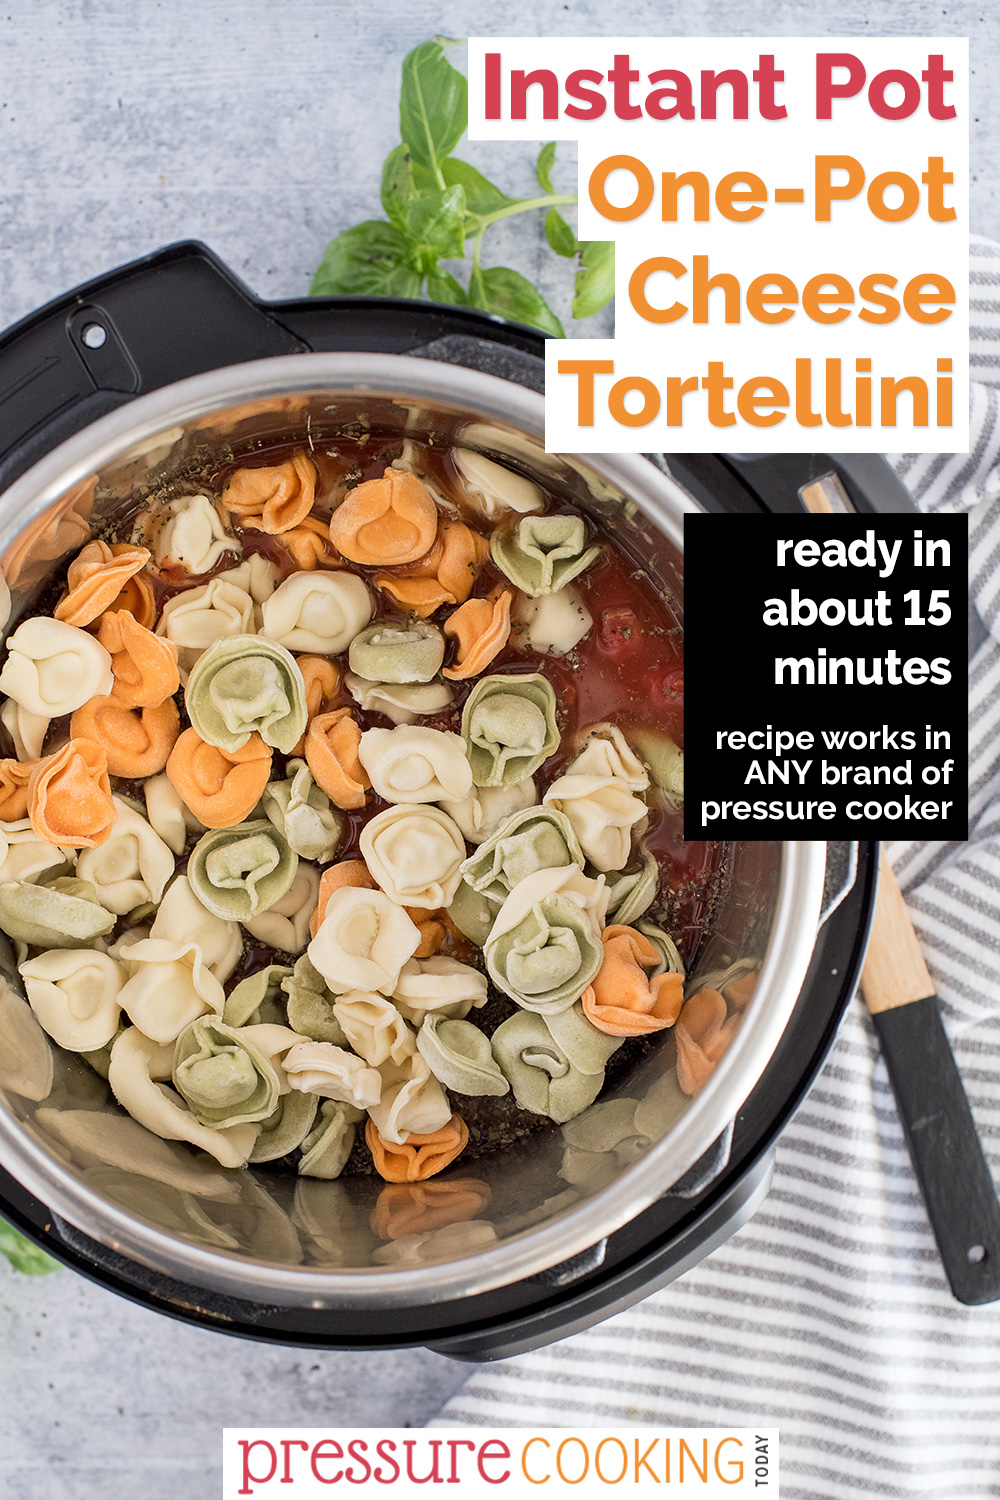 This Instant Pot Tortellini is a one-pot recipe that cooks pasta and sauce at the same time in the same pot. It goes from frozen to finished in about 15 minutes. Plus it starts from frozen pasta, so it's great on busy nights! via @PressureCook2da